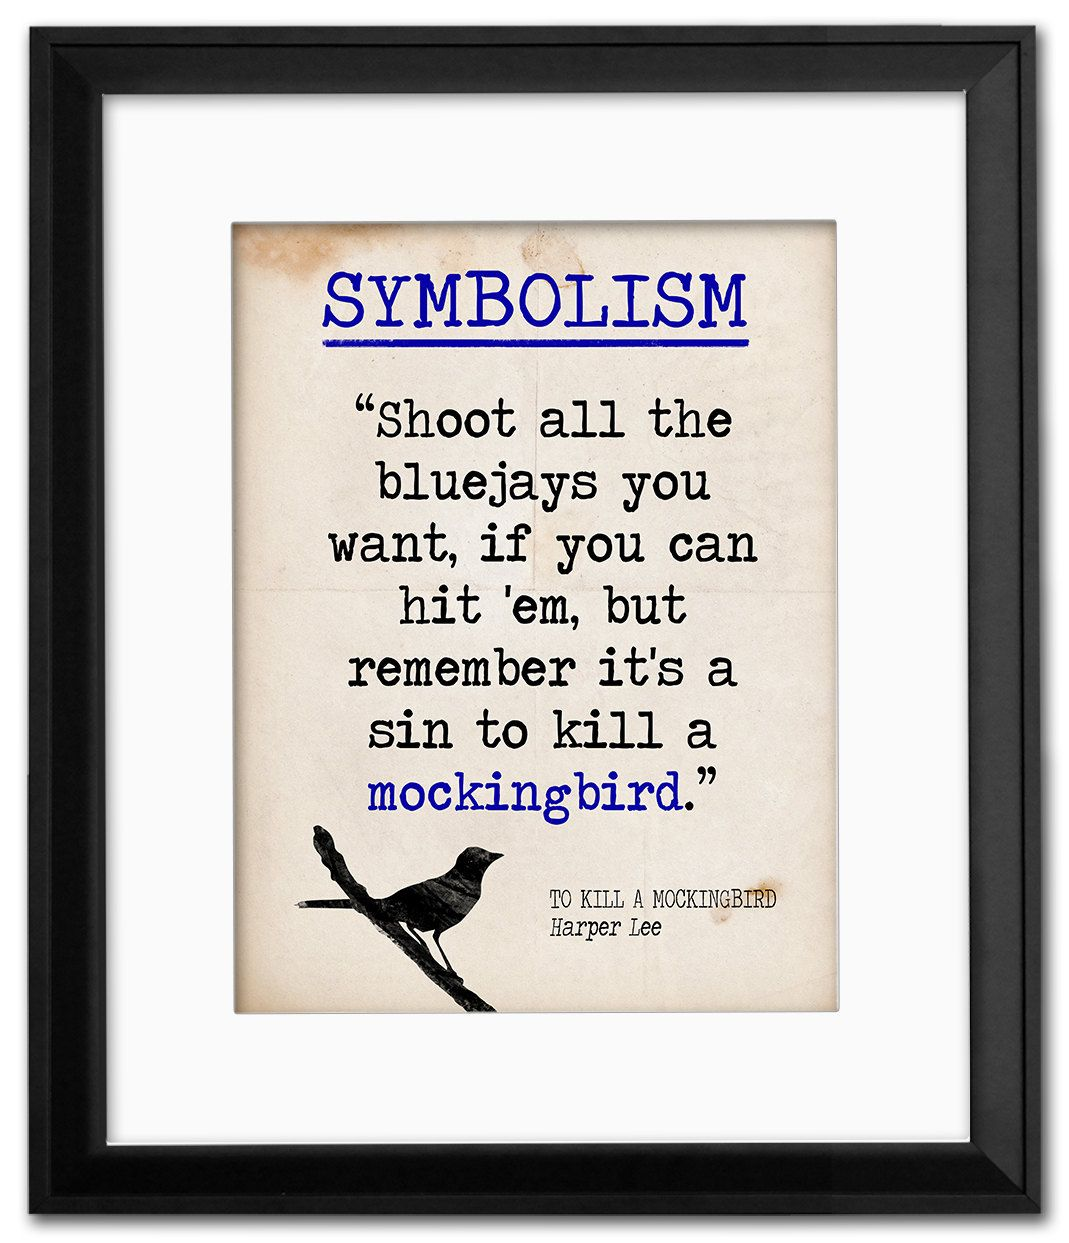 to kill a mockingbird symbolism quote educational art print to kill a mockingbird symbolism quote educational art print featuring harper lee vintage style